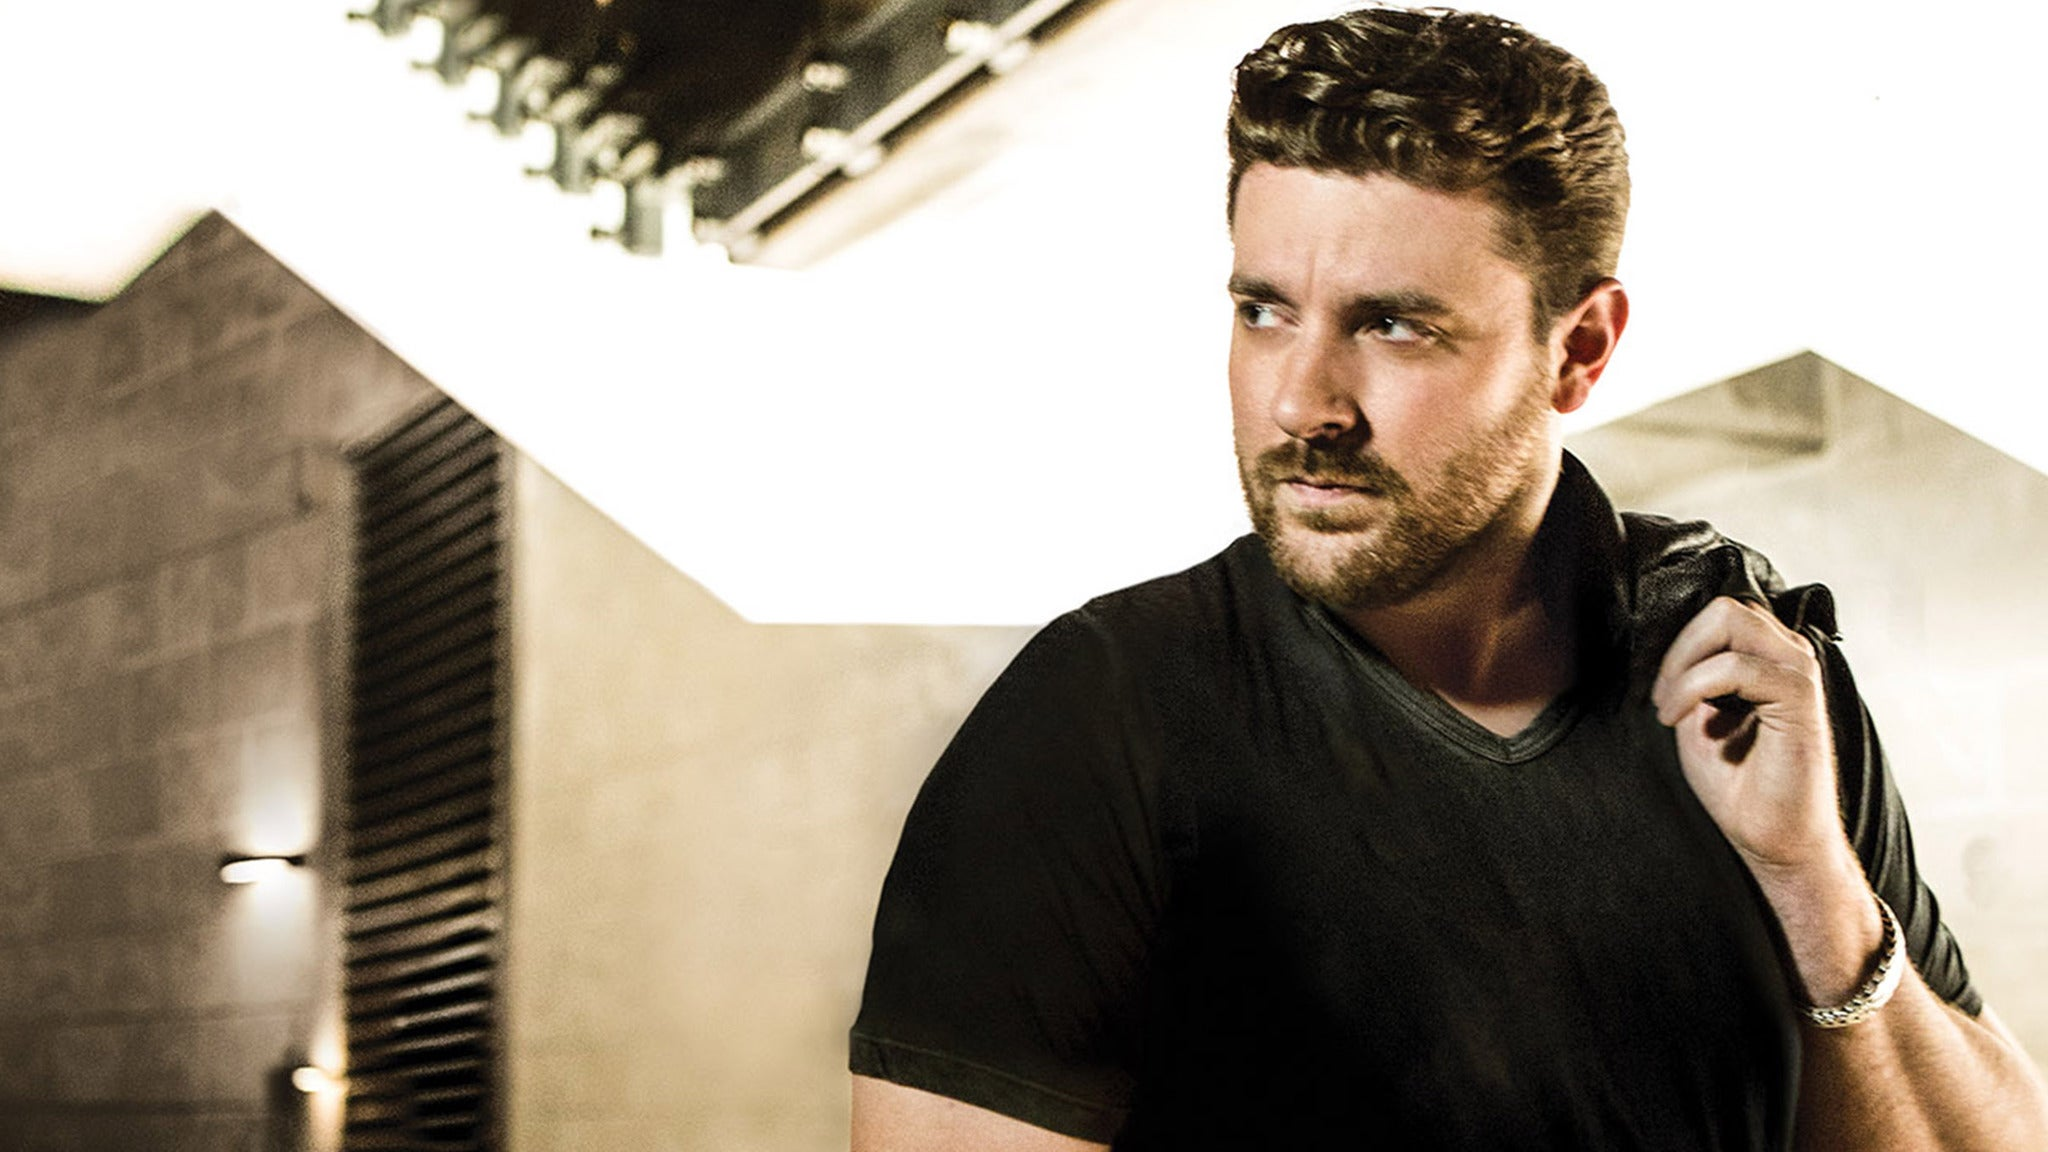 Chris Young featuring Dustin Lynch and Cassadee Pope